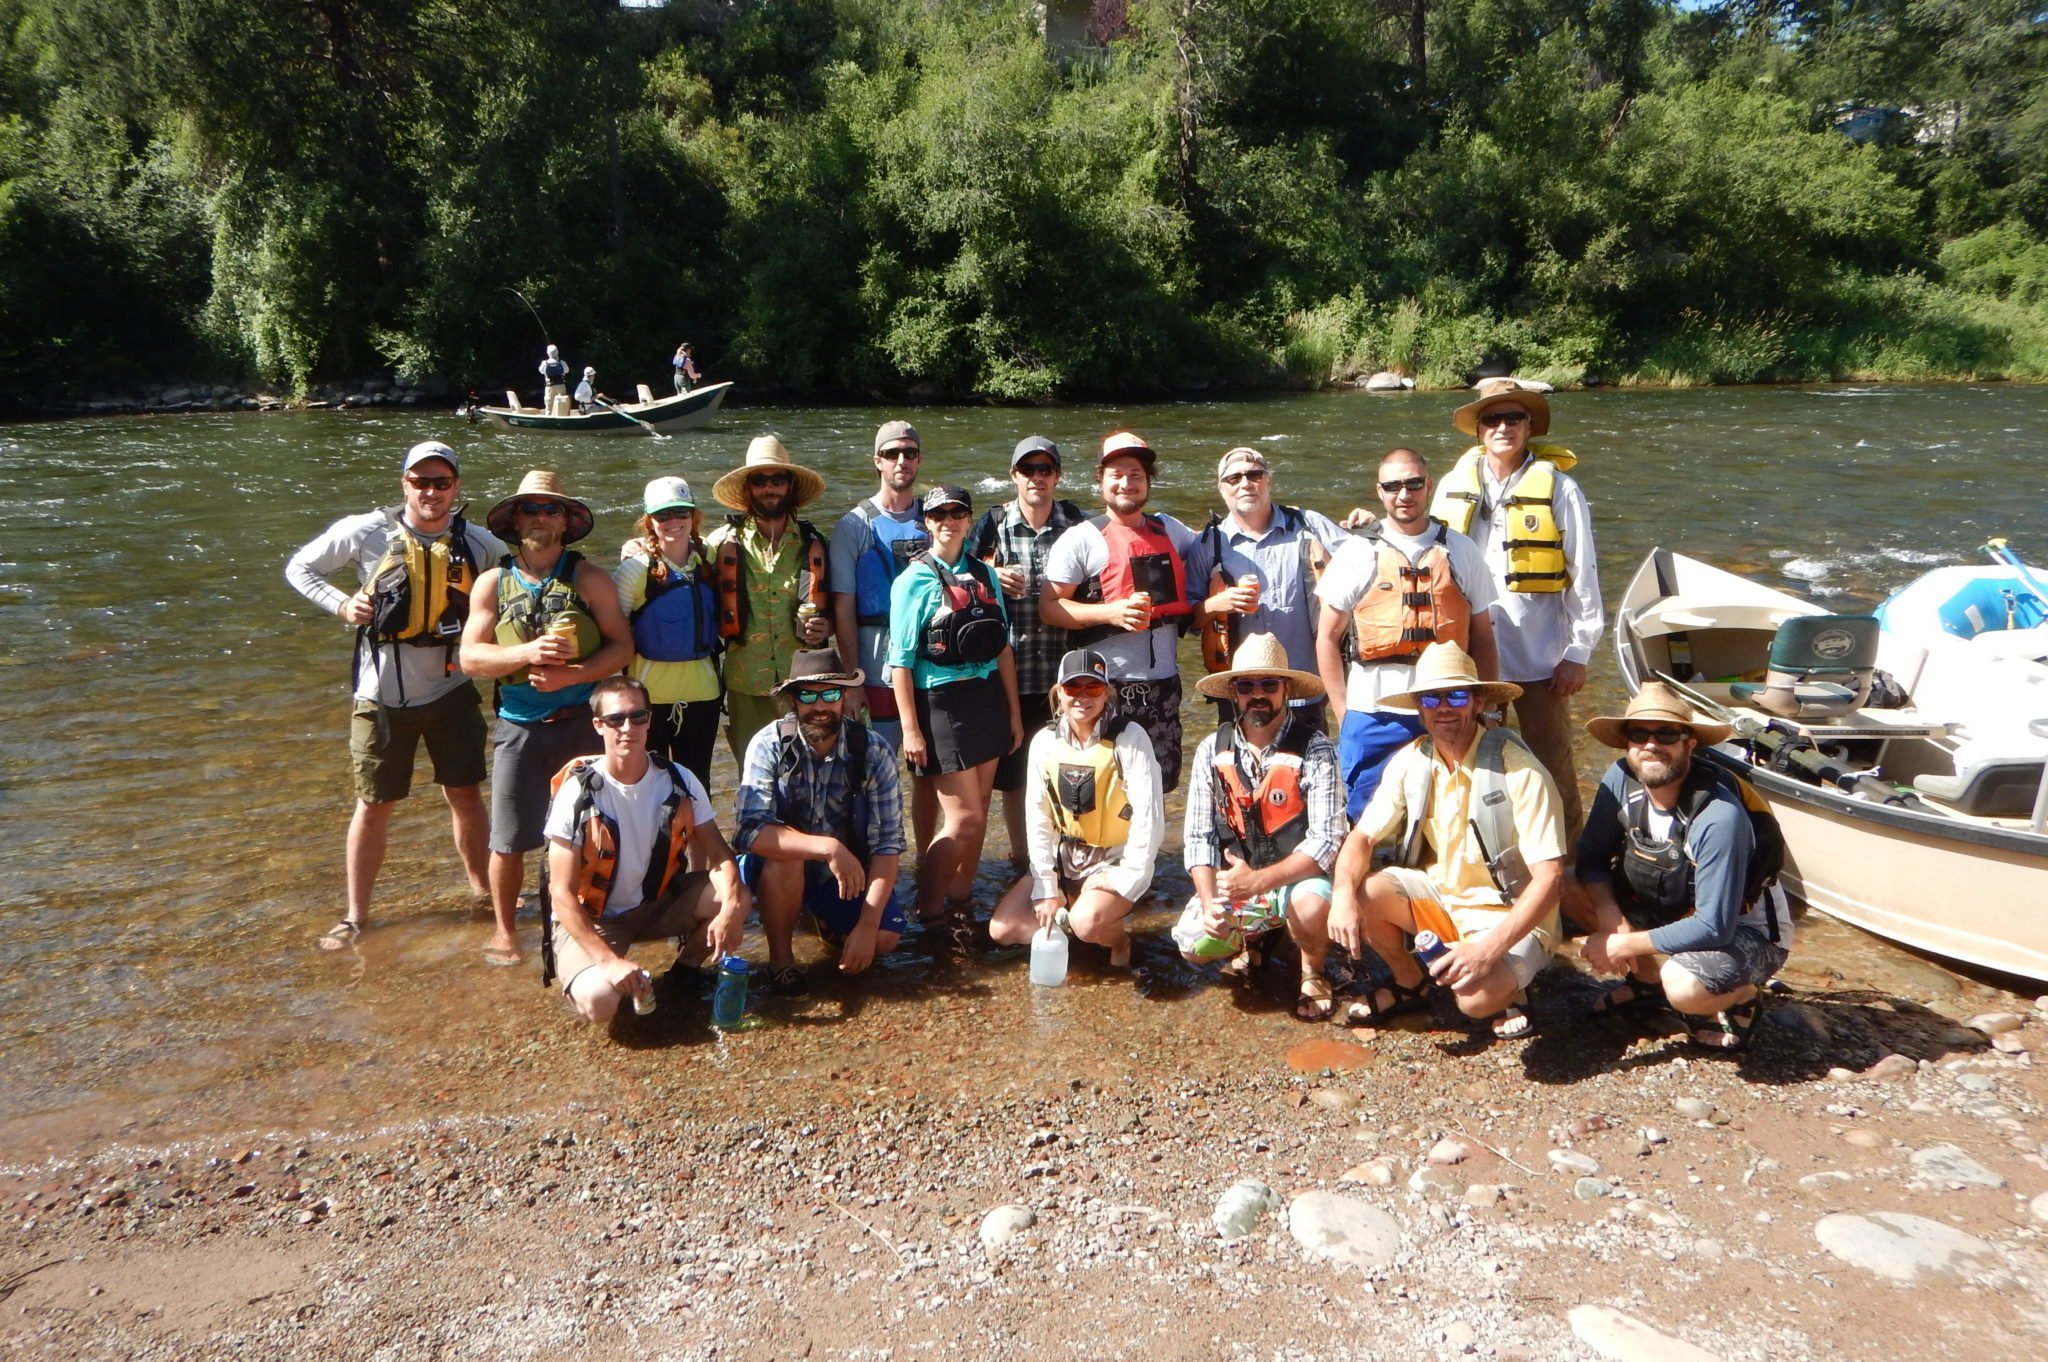 Rafting on the Roaring Fork: A Team Building Adventure thumbnail